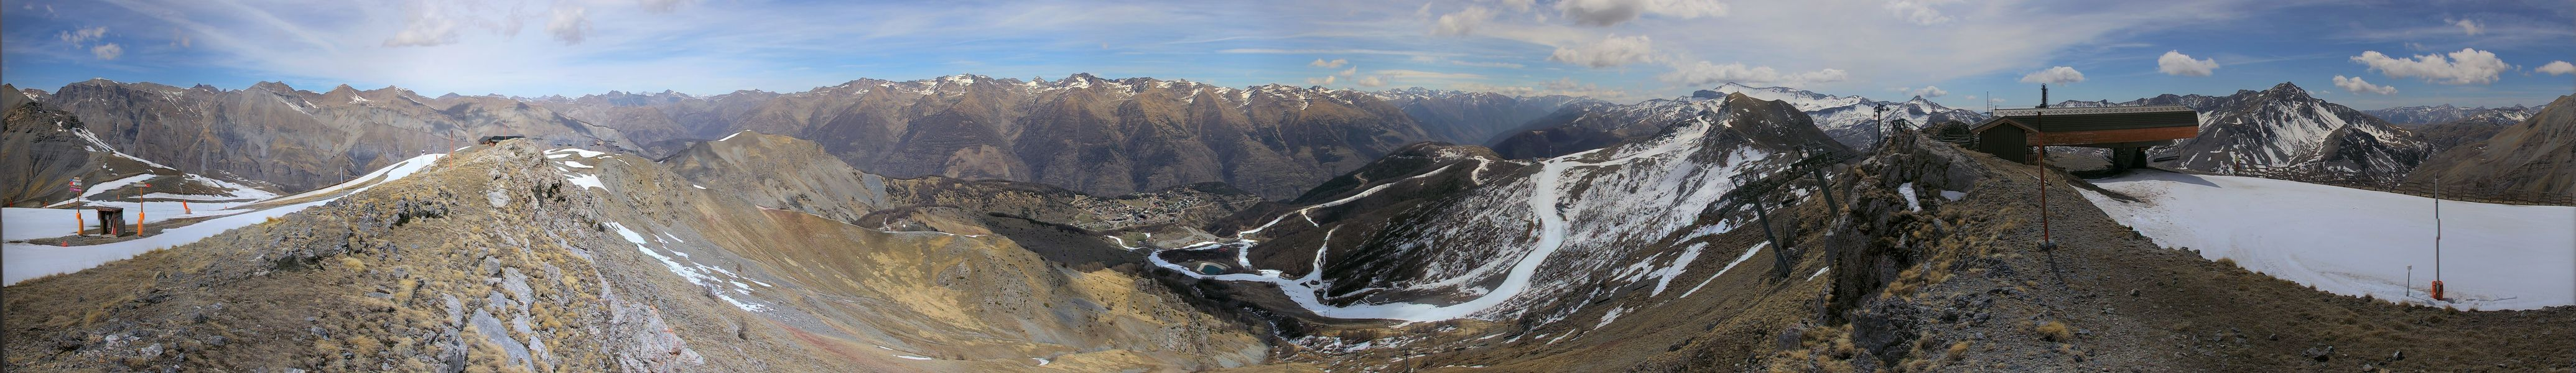 Webcam Auron Cime de Chevalet